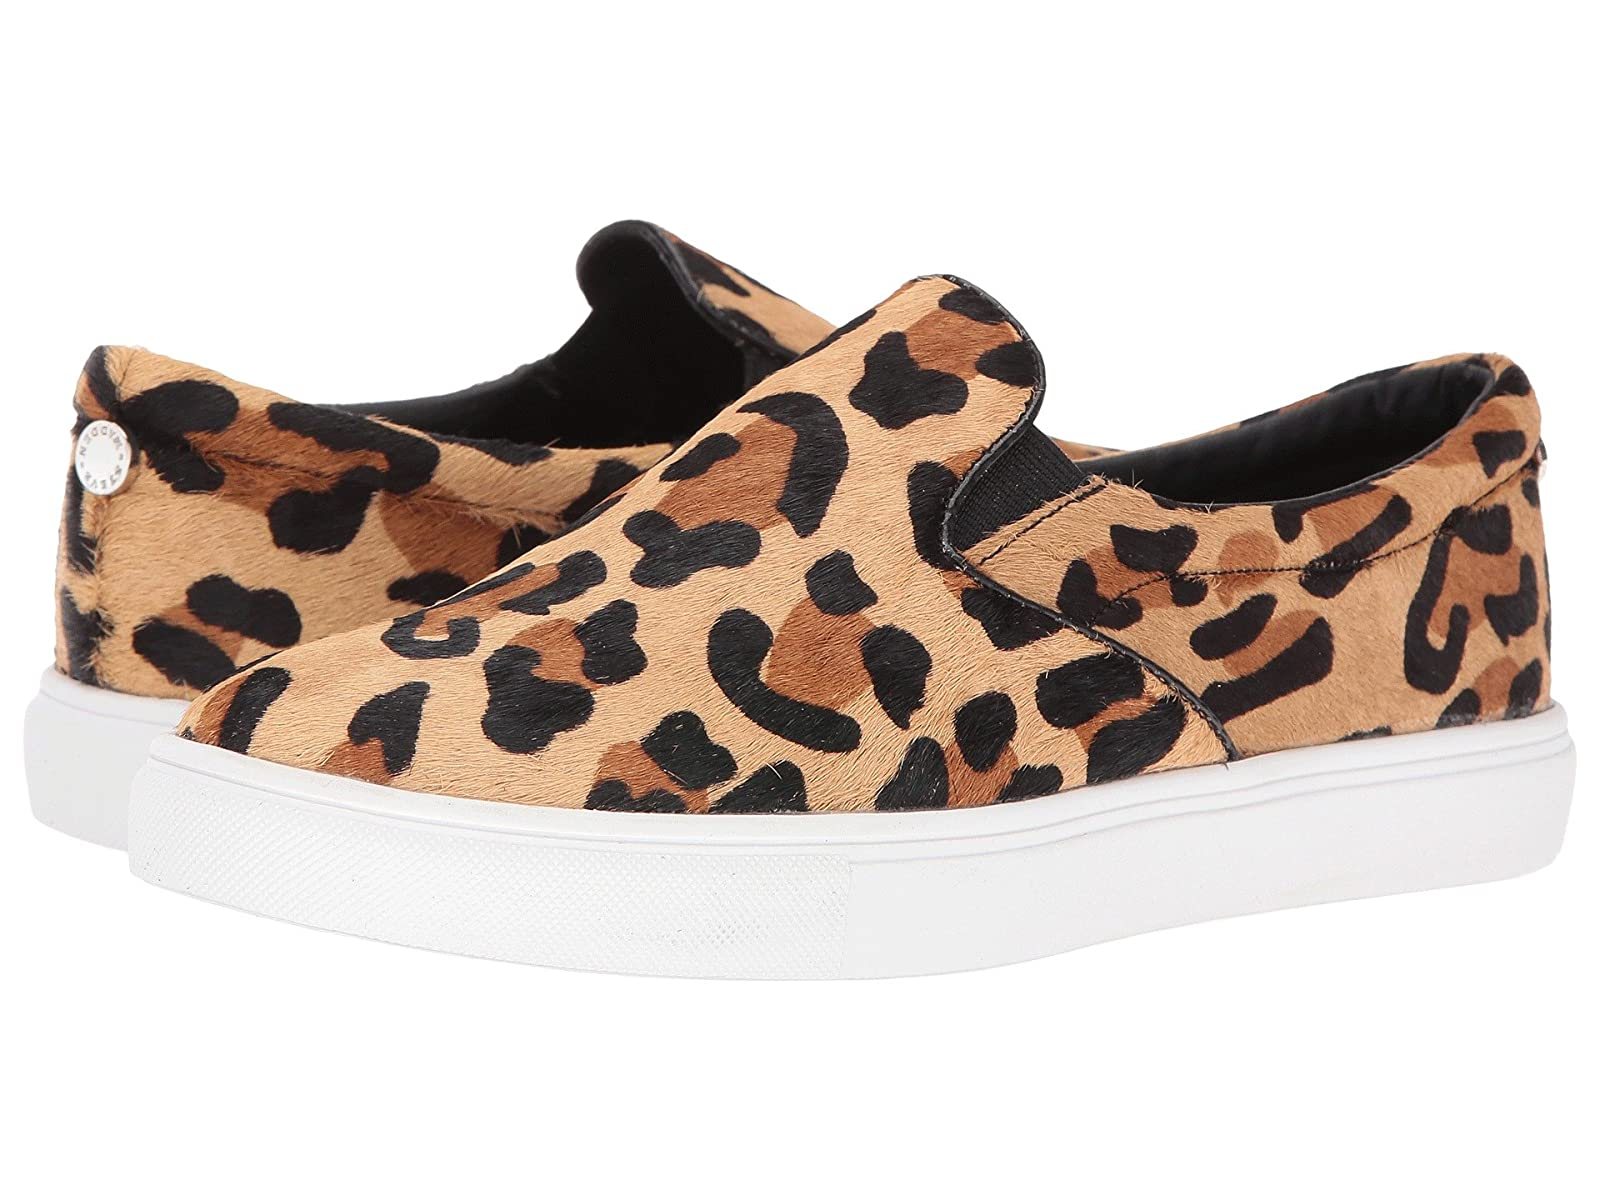 Steve Madden Ecentrcl SneakerAtmospheric grades have affordable shoes